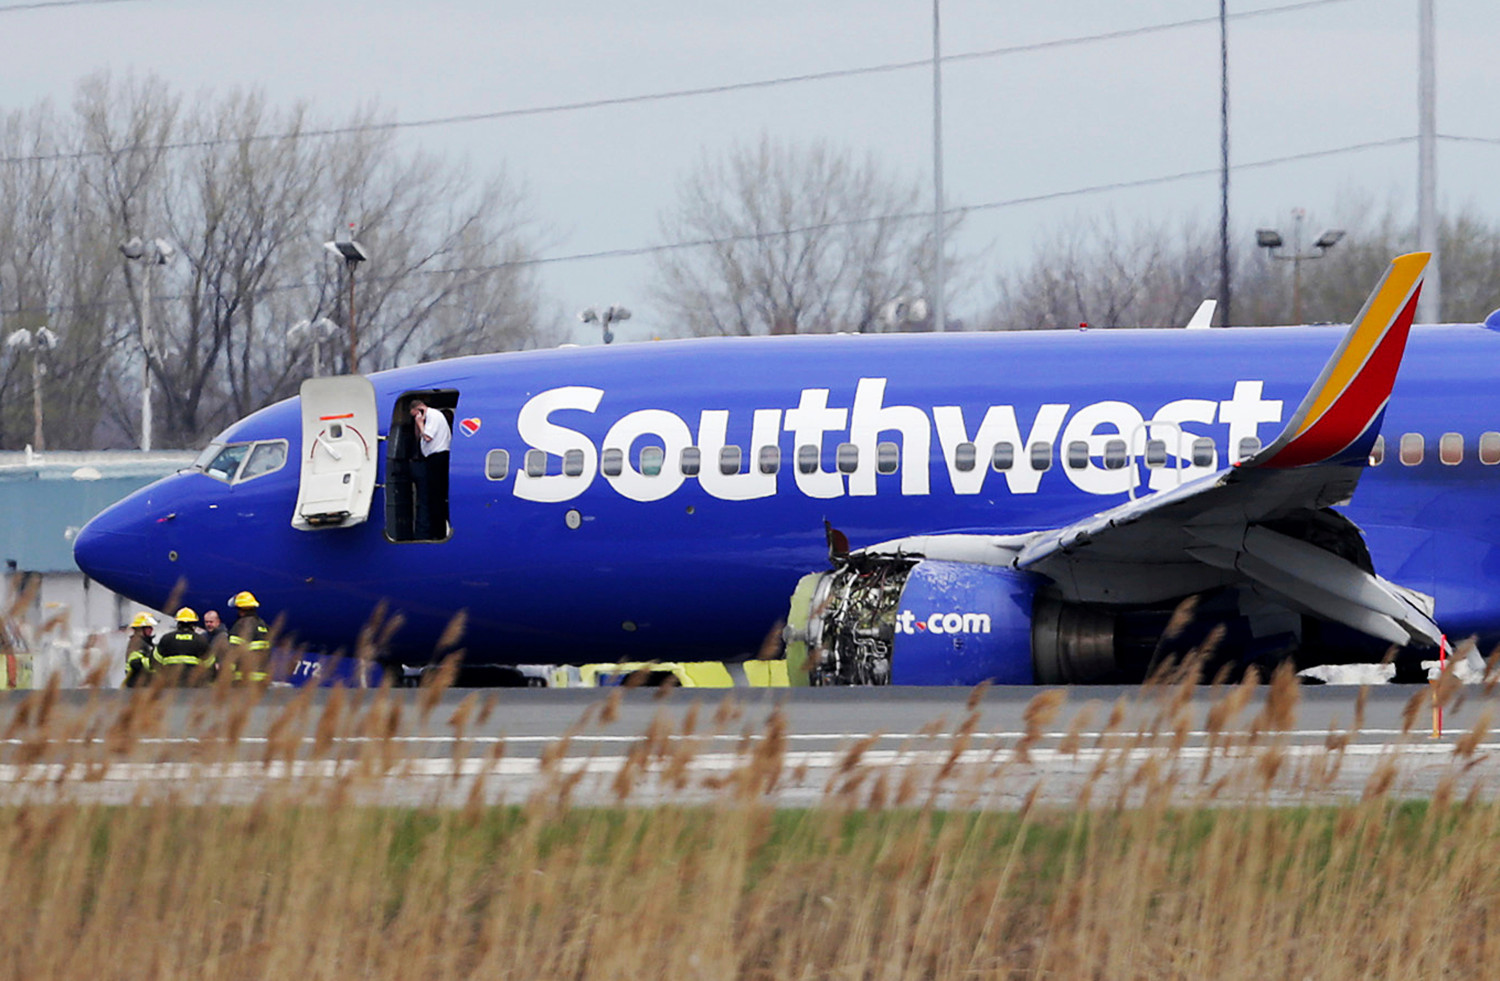 Southwest Airlines plane on runway